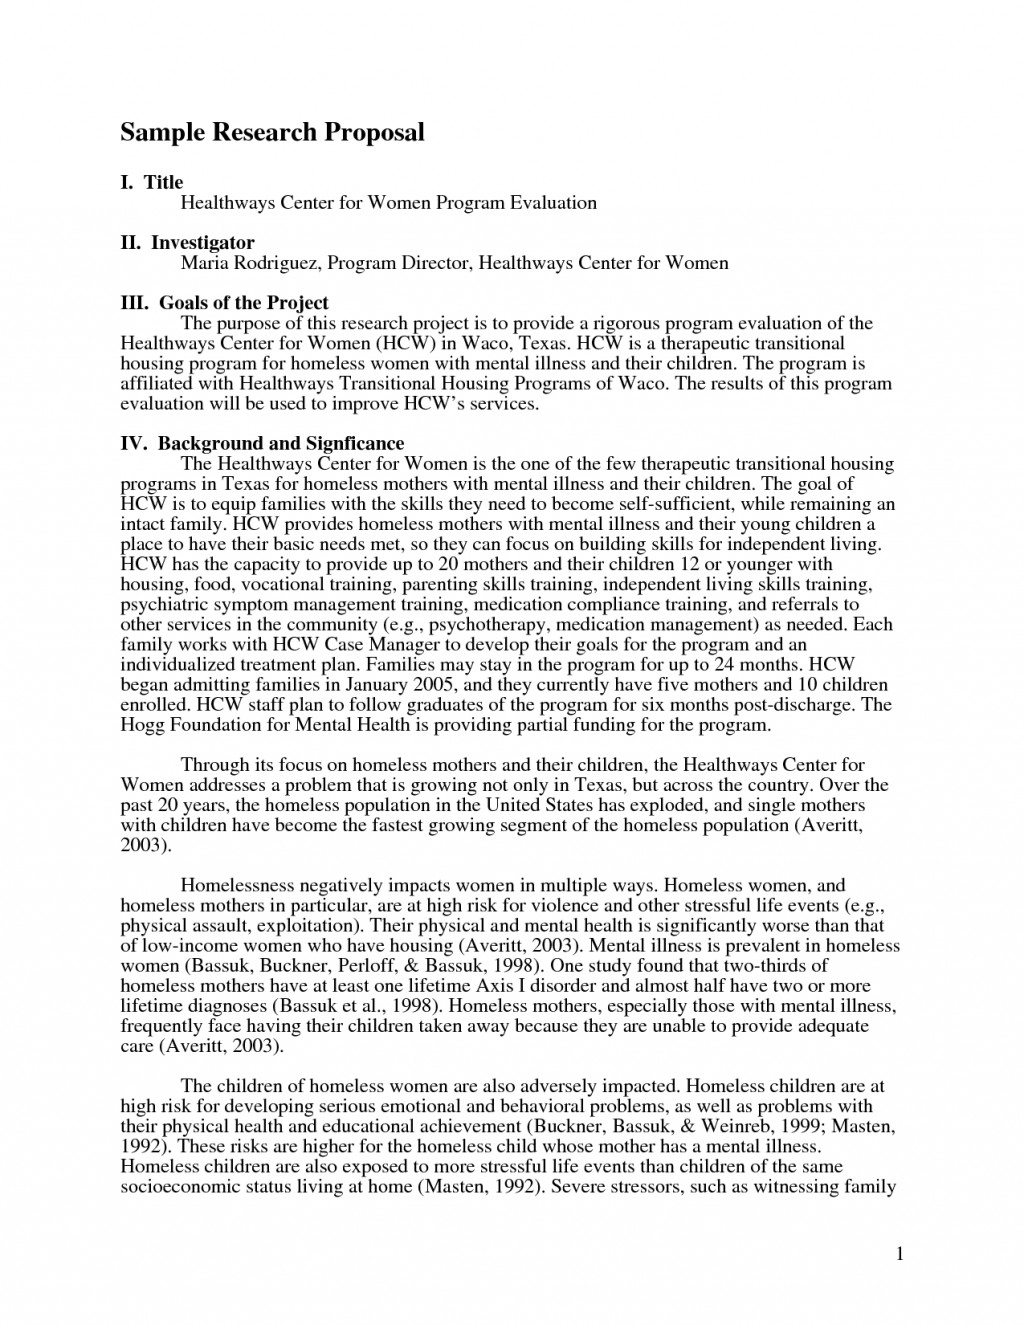 004 Research Paper How To Write An Introduction For Psychology Proposal Sample 612686 Sensational A Large